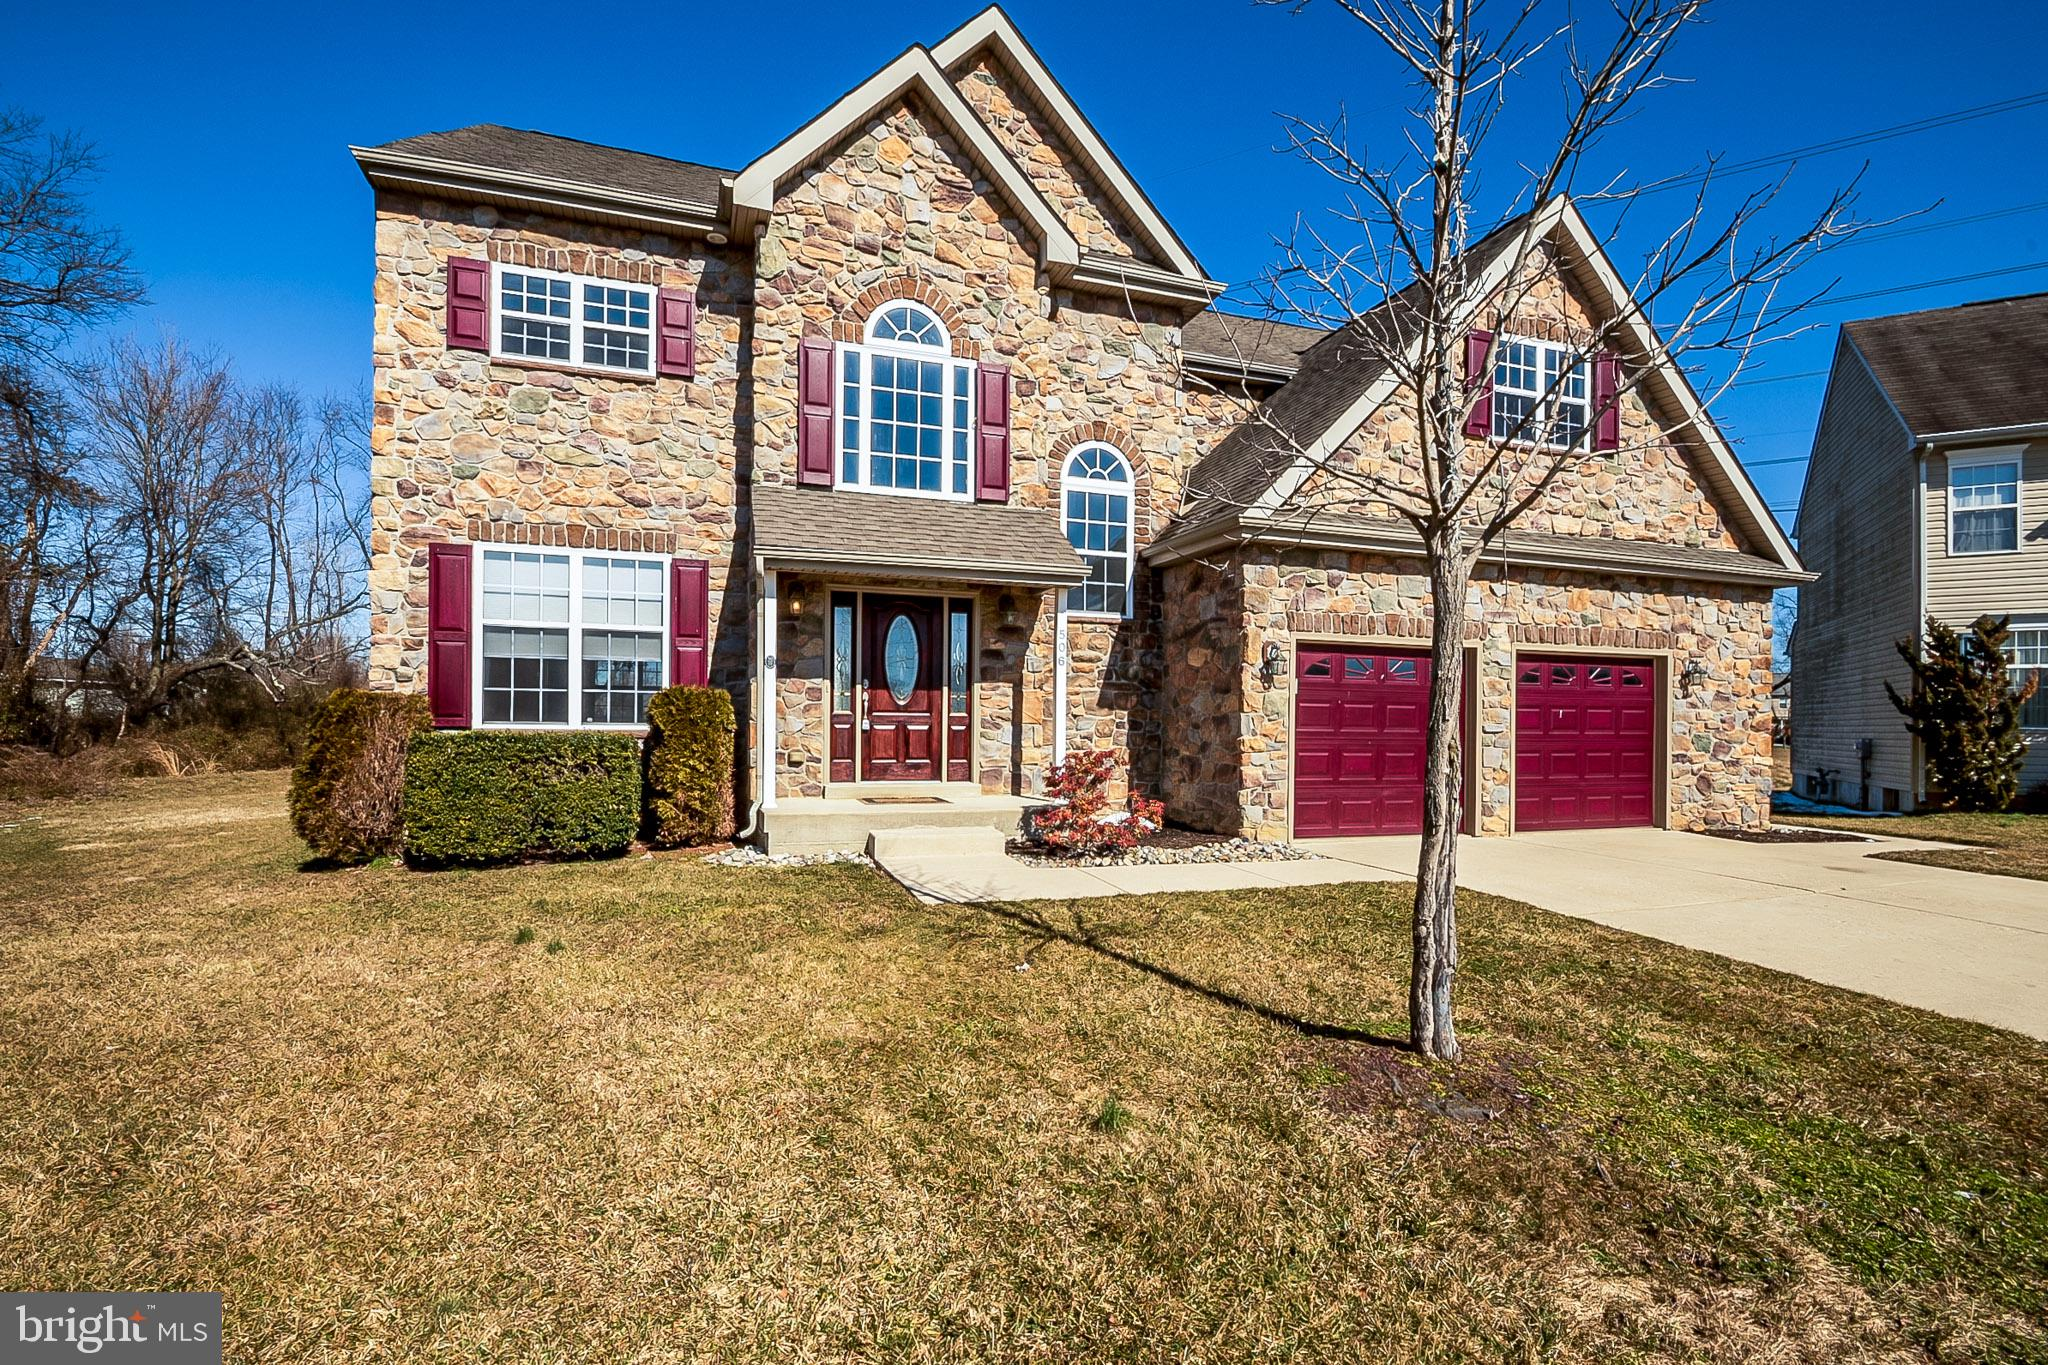 """One of a Kind, Custom Built Home , largest home in Wynnefield Hunt.  You will not find a comparable home in this quiet neighborhood just off of route 40. Over sized lot on cul-de-sac. Open concept kitchen, granite countertops, 42"""" cabinets, pantry,  stainless appliances,  HUGE family room with fireplace, finished basement with walk out, second floor laundry, high efficiency HVAC, tankless hot water heater, oversized bedrooms, custom accents, 31' x 12' maintenance free Trex deck with stairs to grade, Brazilian Cherry hardwood floors, completely floored A-frame attic all wrapped into one! Vaulted ceilings in the master bedroom give way to a beautiful master bath equipped with whirl pool tub, shower and dual vanities. 3 more generously sized bedrooms, additional full bath with dual vanities round out the second floor.   Attached two car garage with power doors, poured concrete driveway and stunning stone façade. This house has everything you could ask for and more,"""